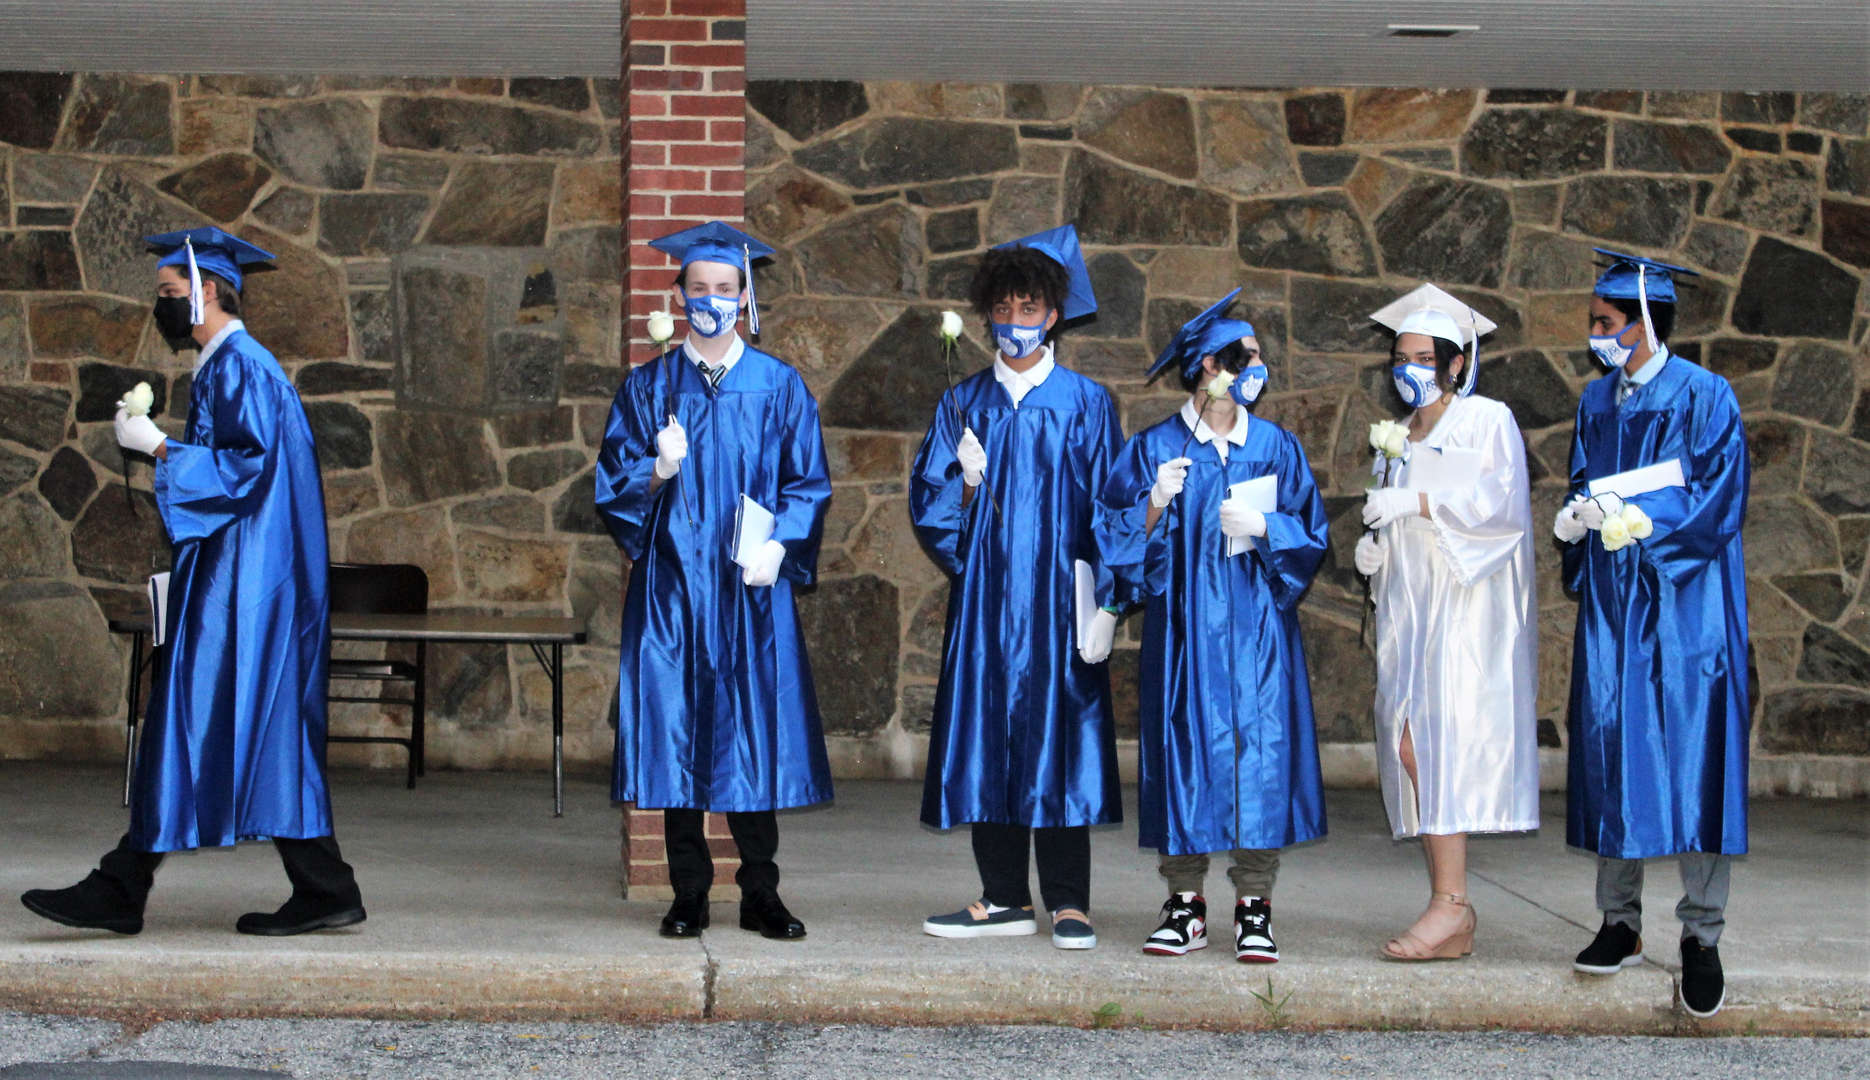 Graduates holding white roses to place beneath a plaque.